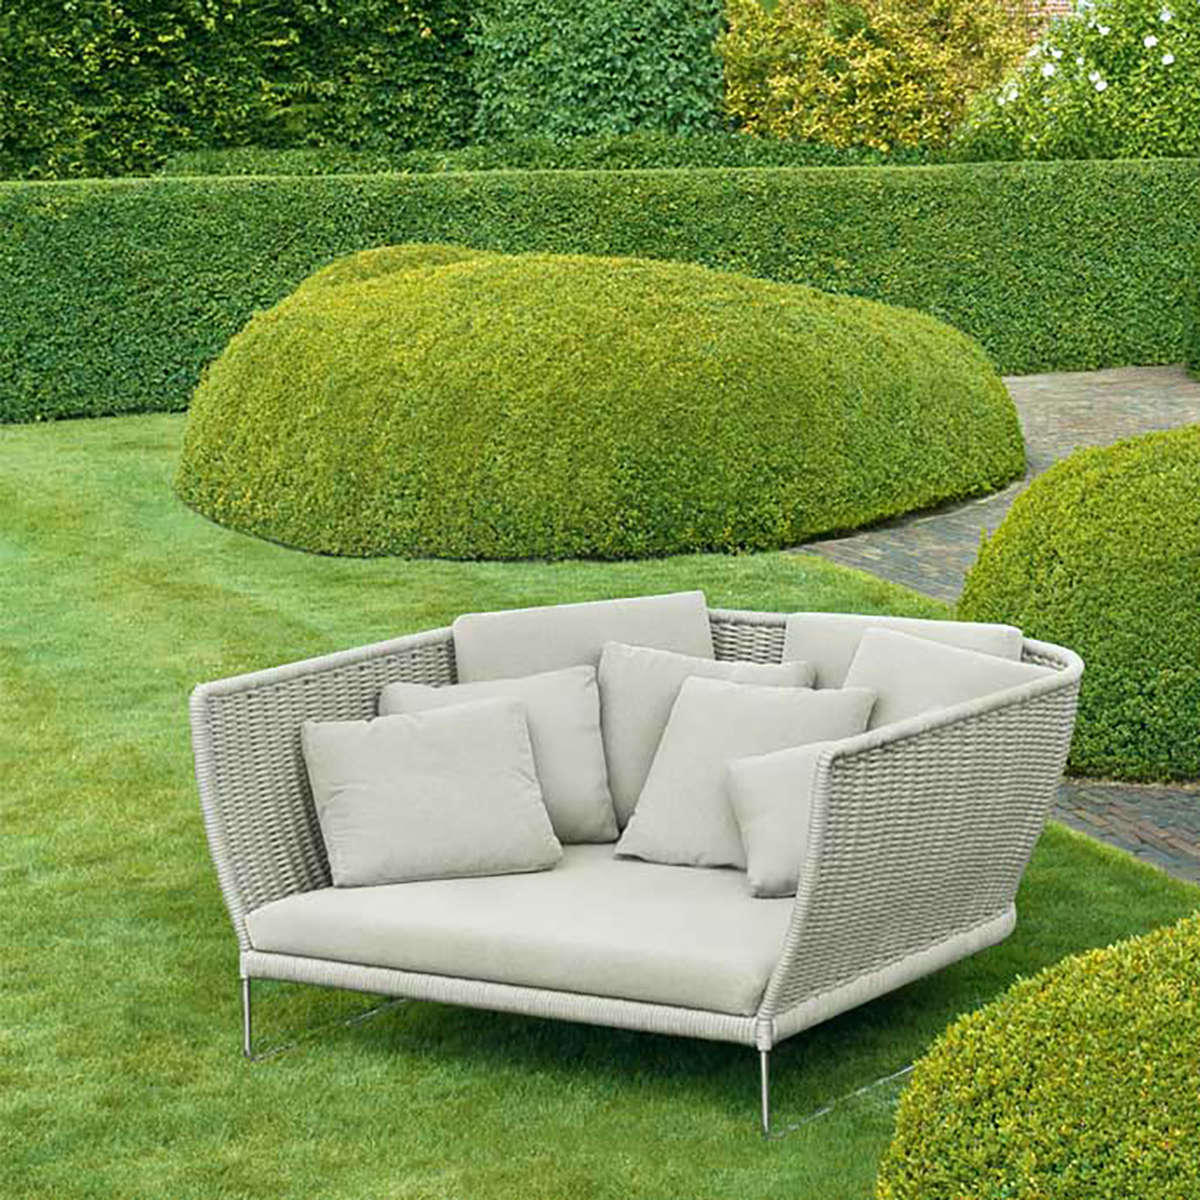 Paola Lenti Ami Daybed